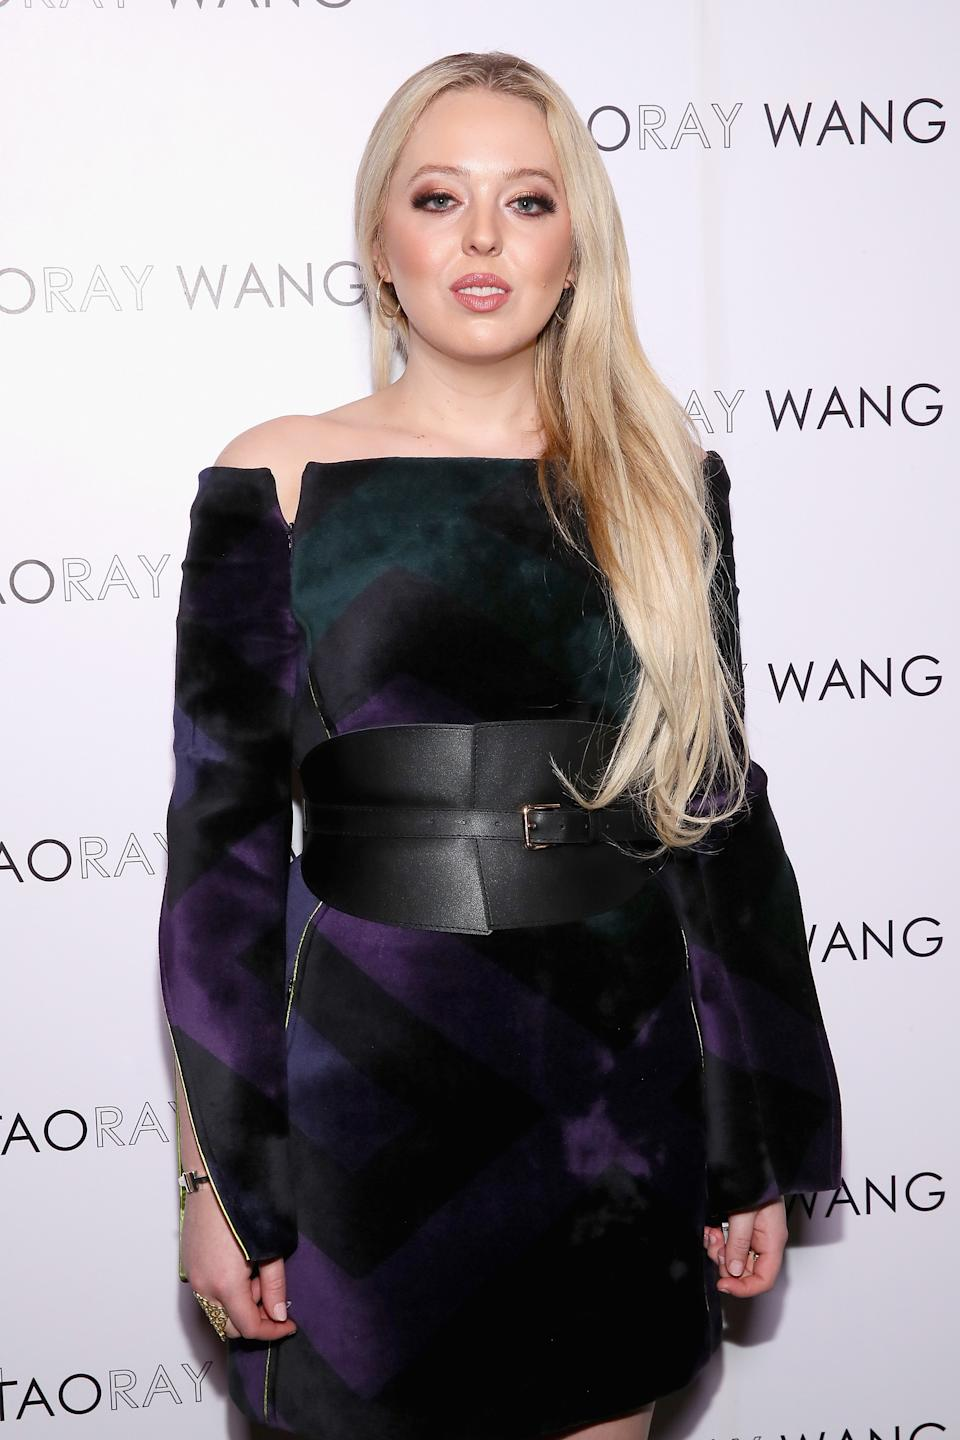 Tiffany Trump posted a cryptic poem on her Instagram page. (Photo: Astrid Stawiarz/Getty Images for Taoray Wang)